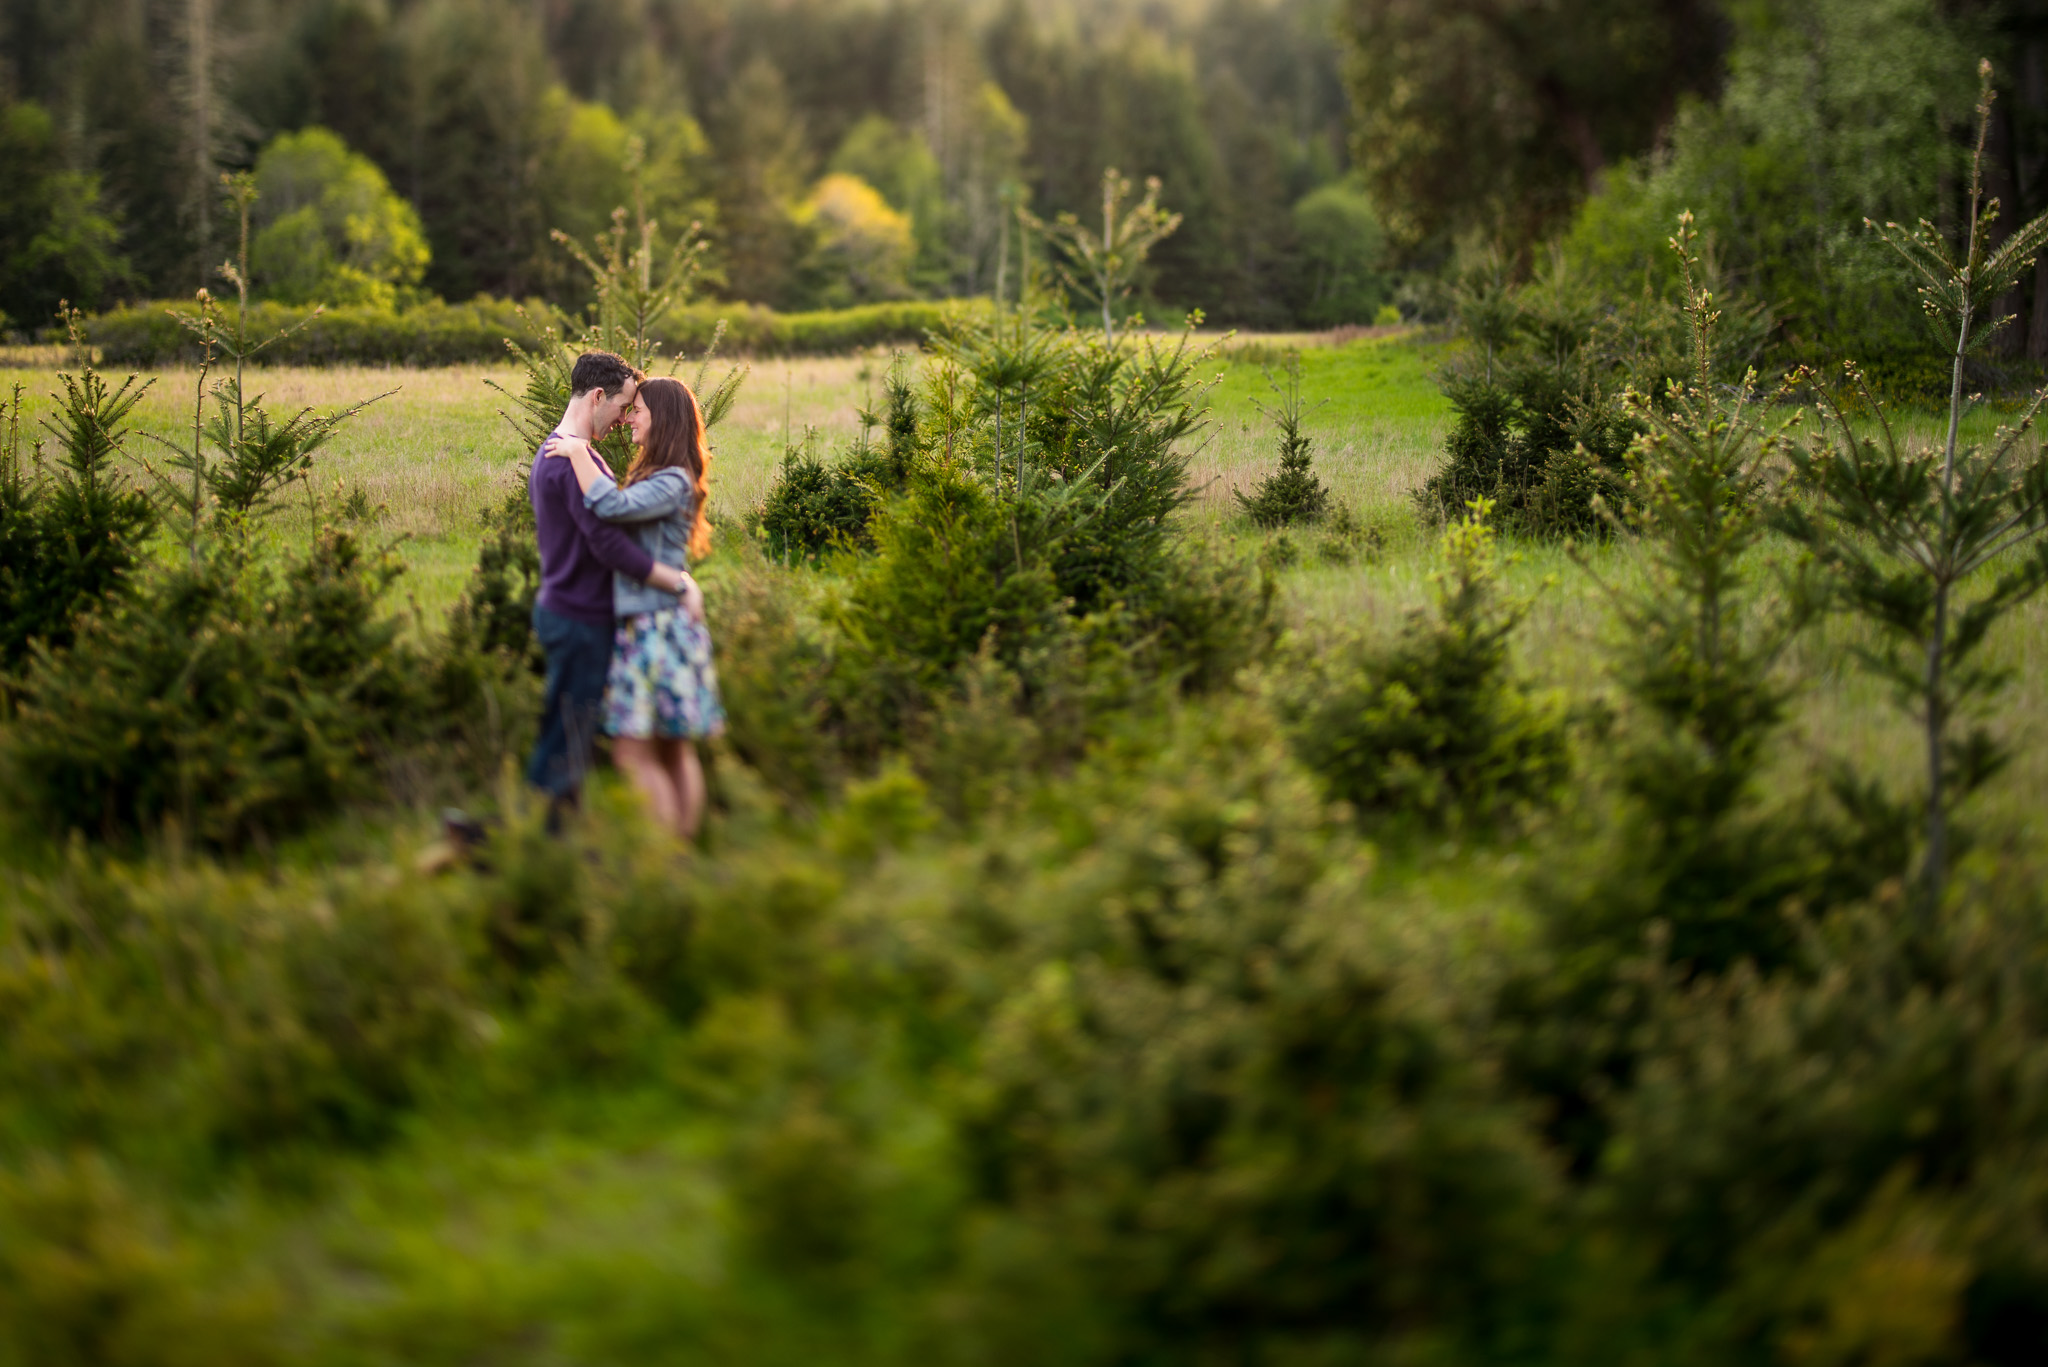 east-sooke-park-engagement-victoria-wedding-photographers-5.jpg